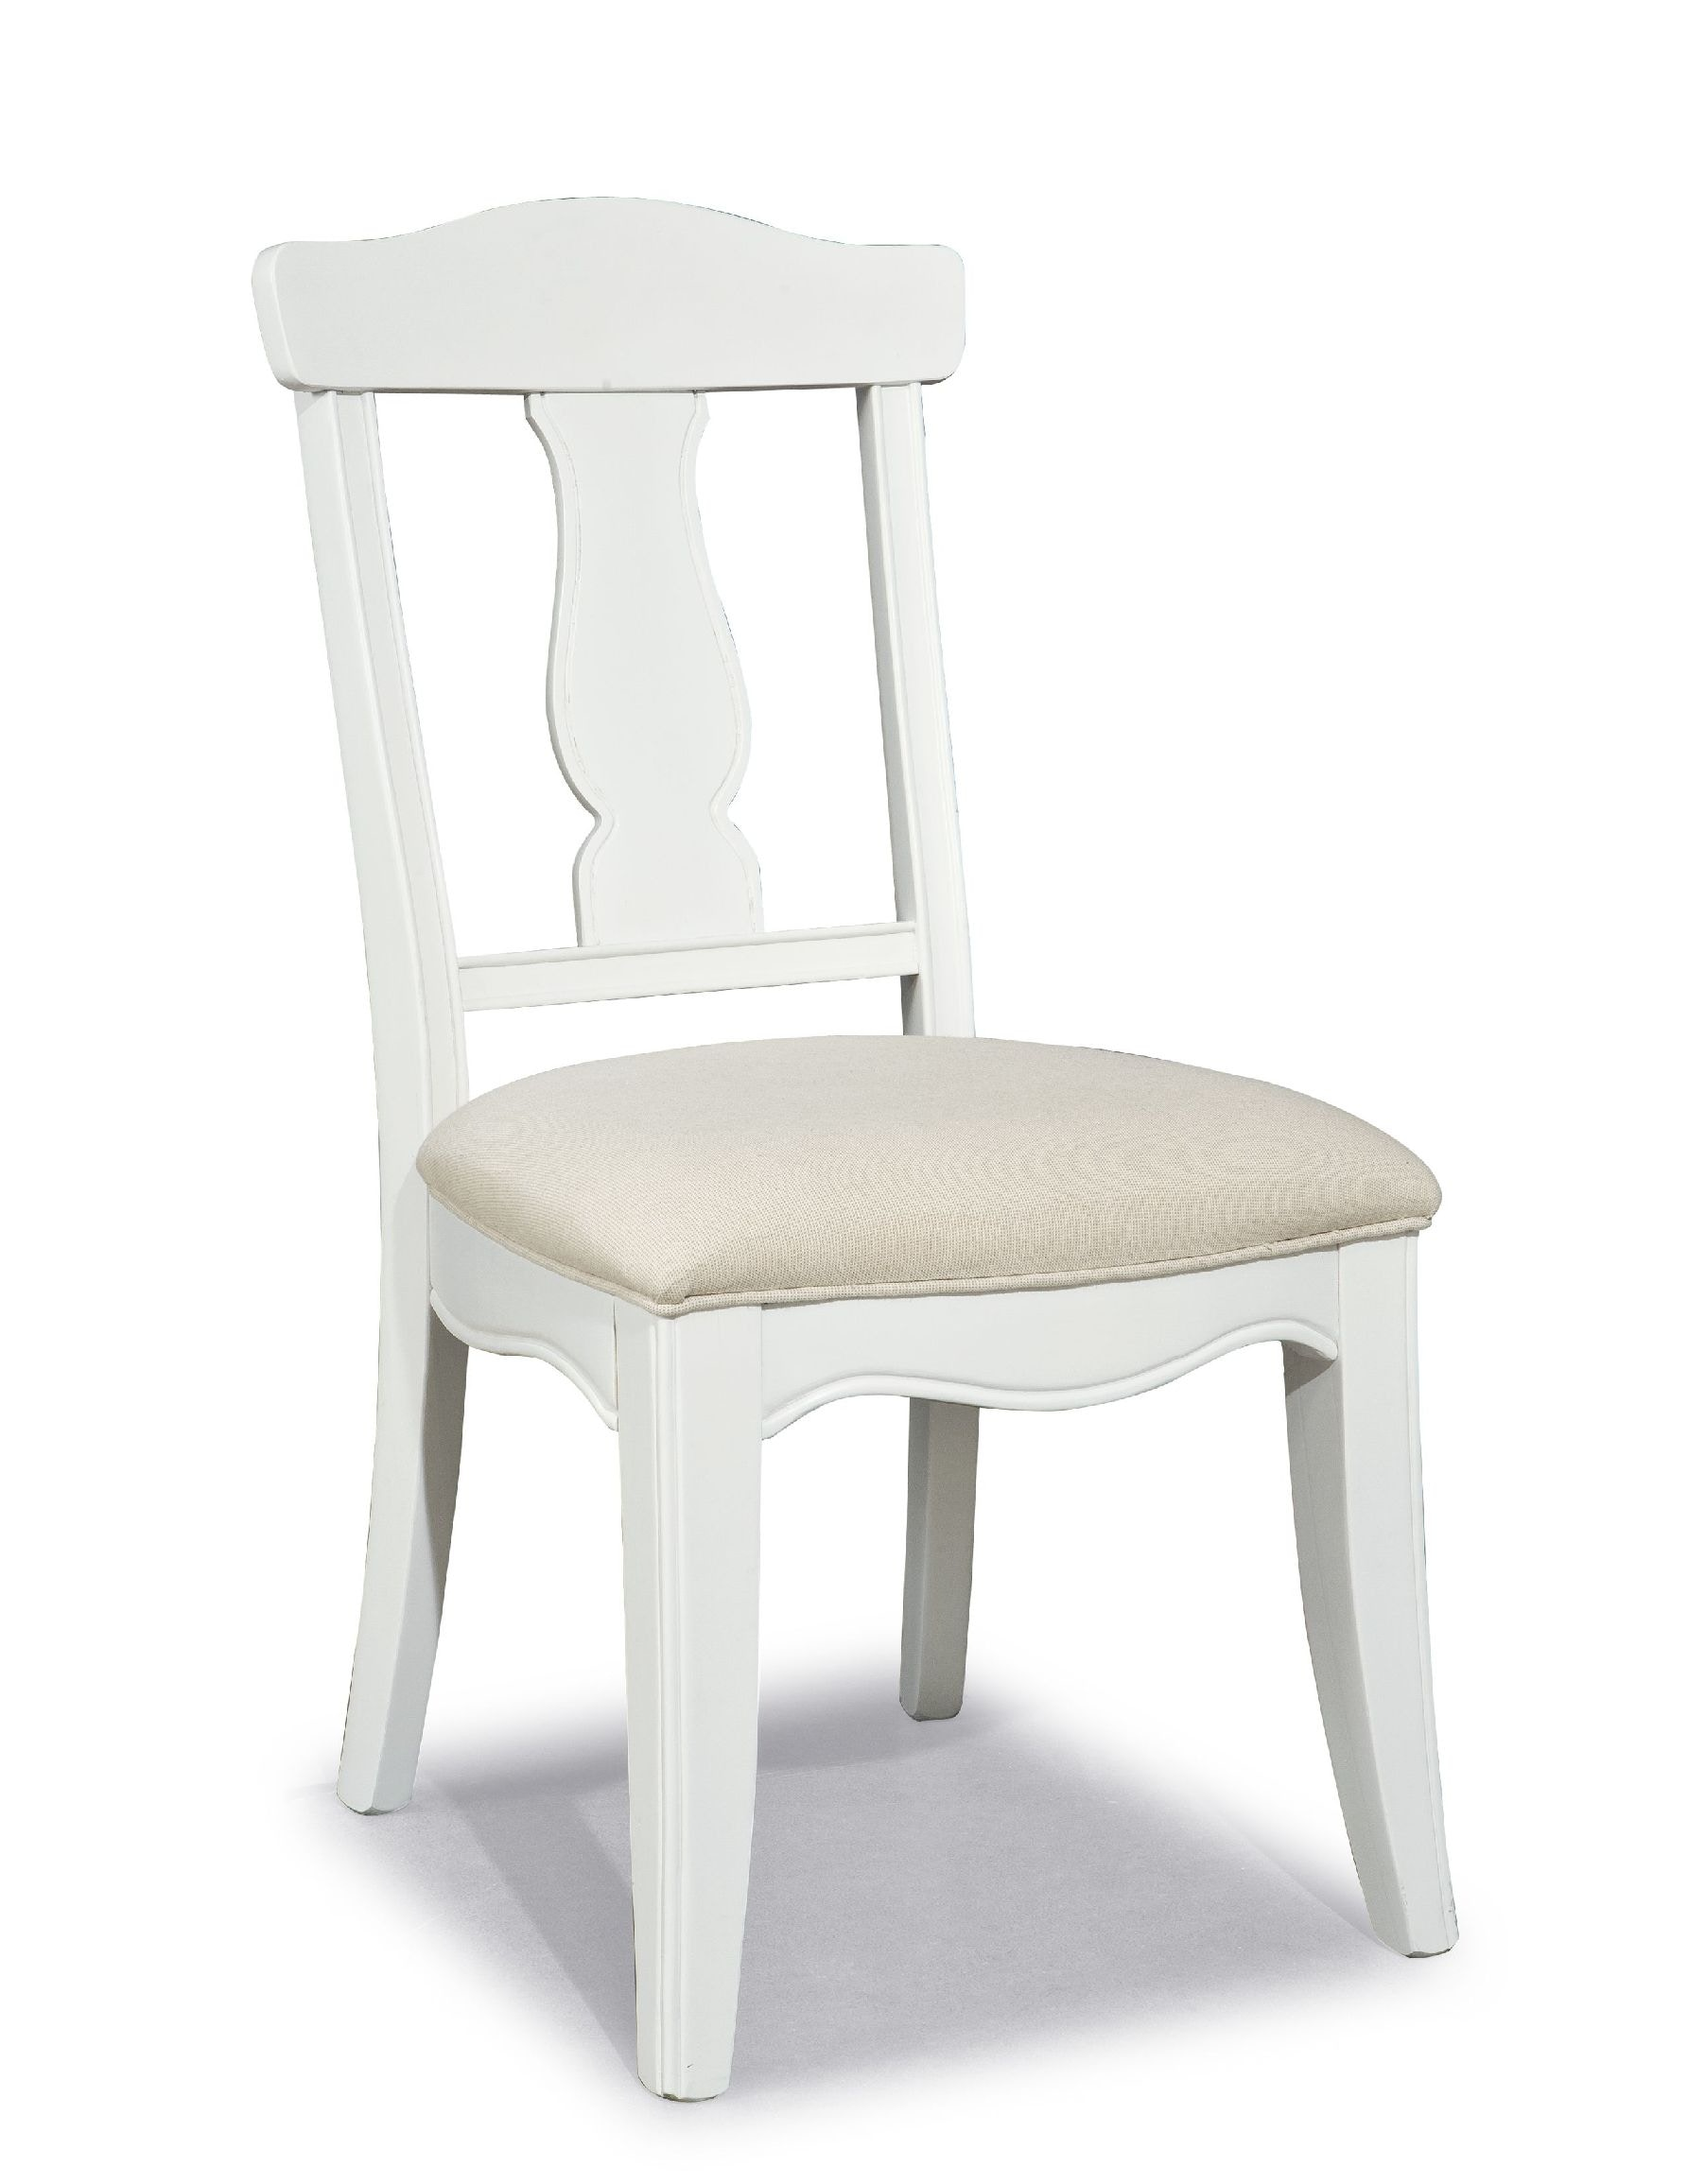 bedroom chairs portable makeup chair woodley s furniture colorado springs fort legacy classic kids desk 2830 640 kd